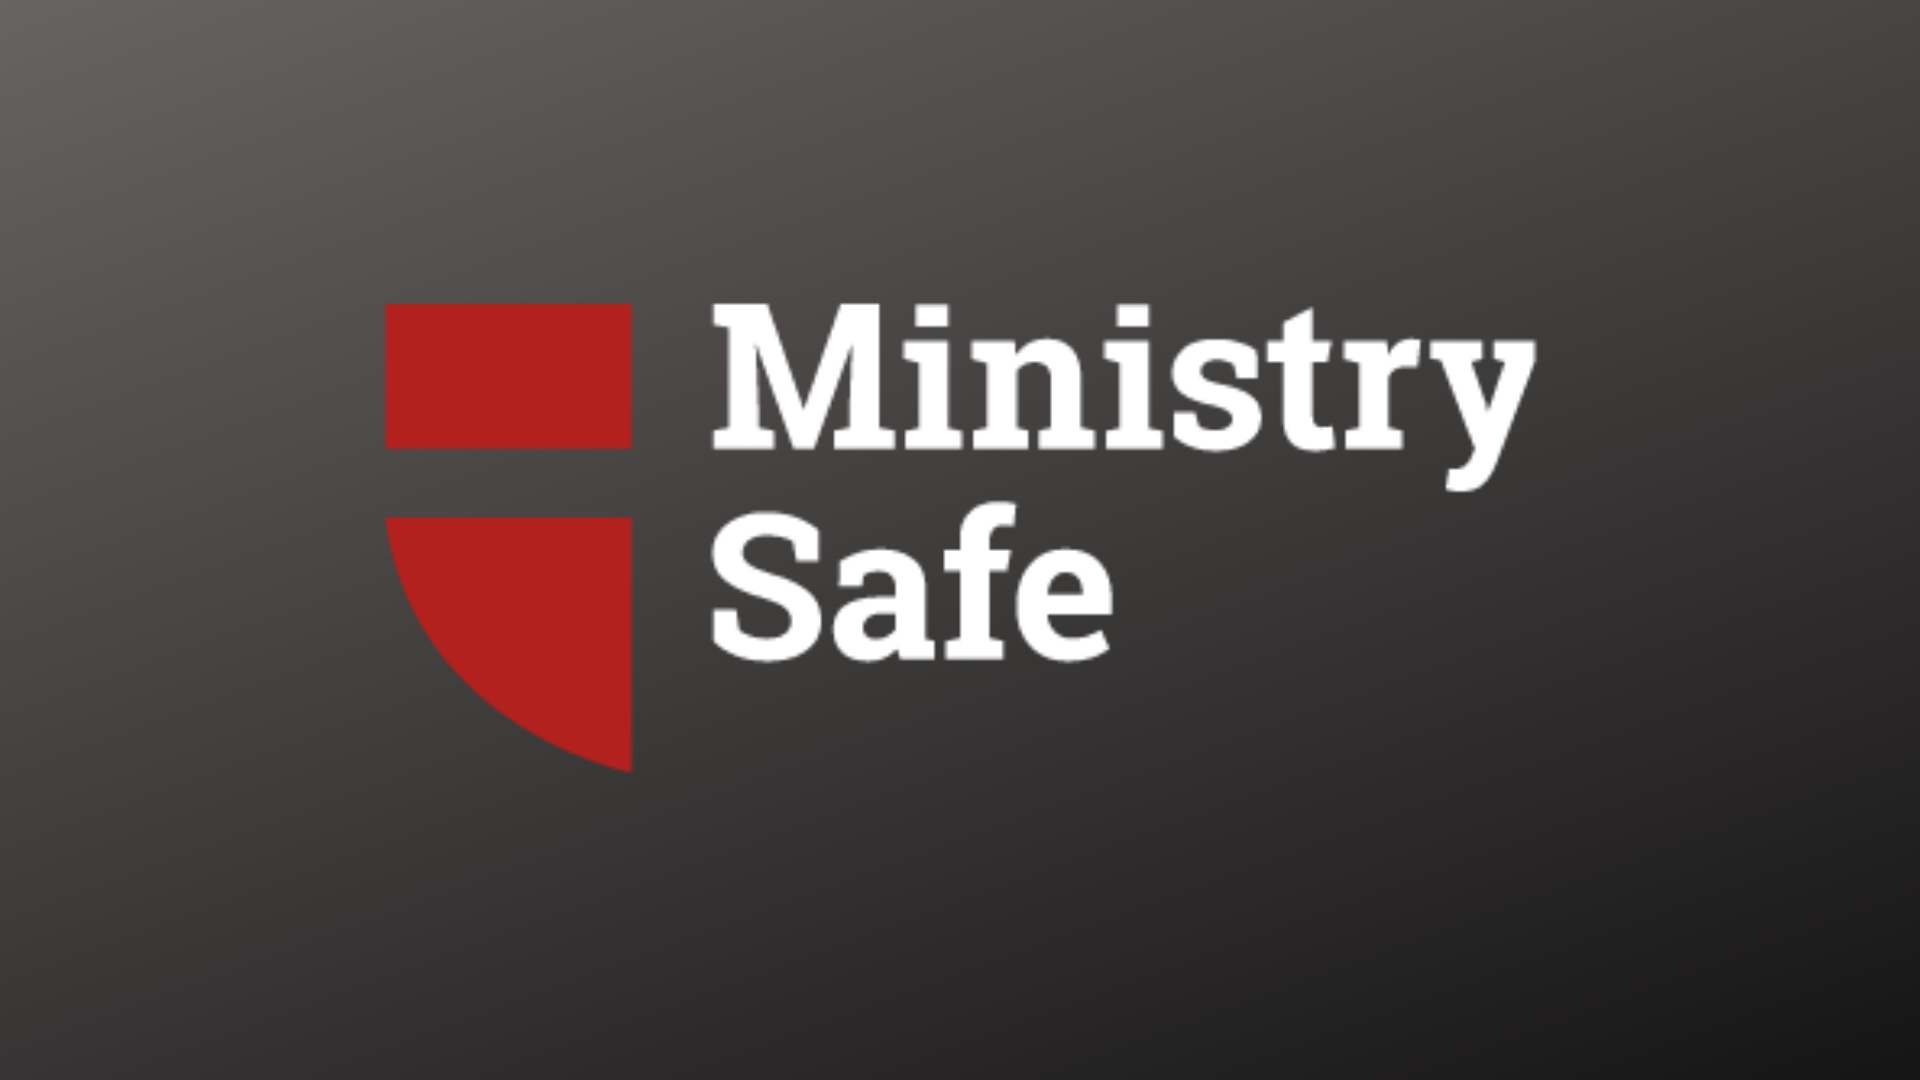 Ministry Safe Training 1920x1080